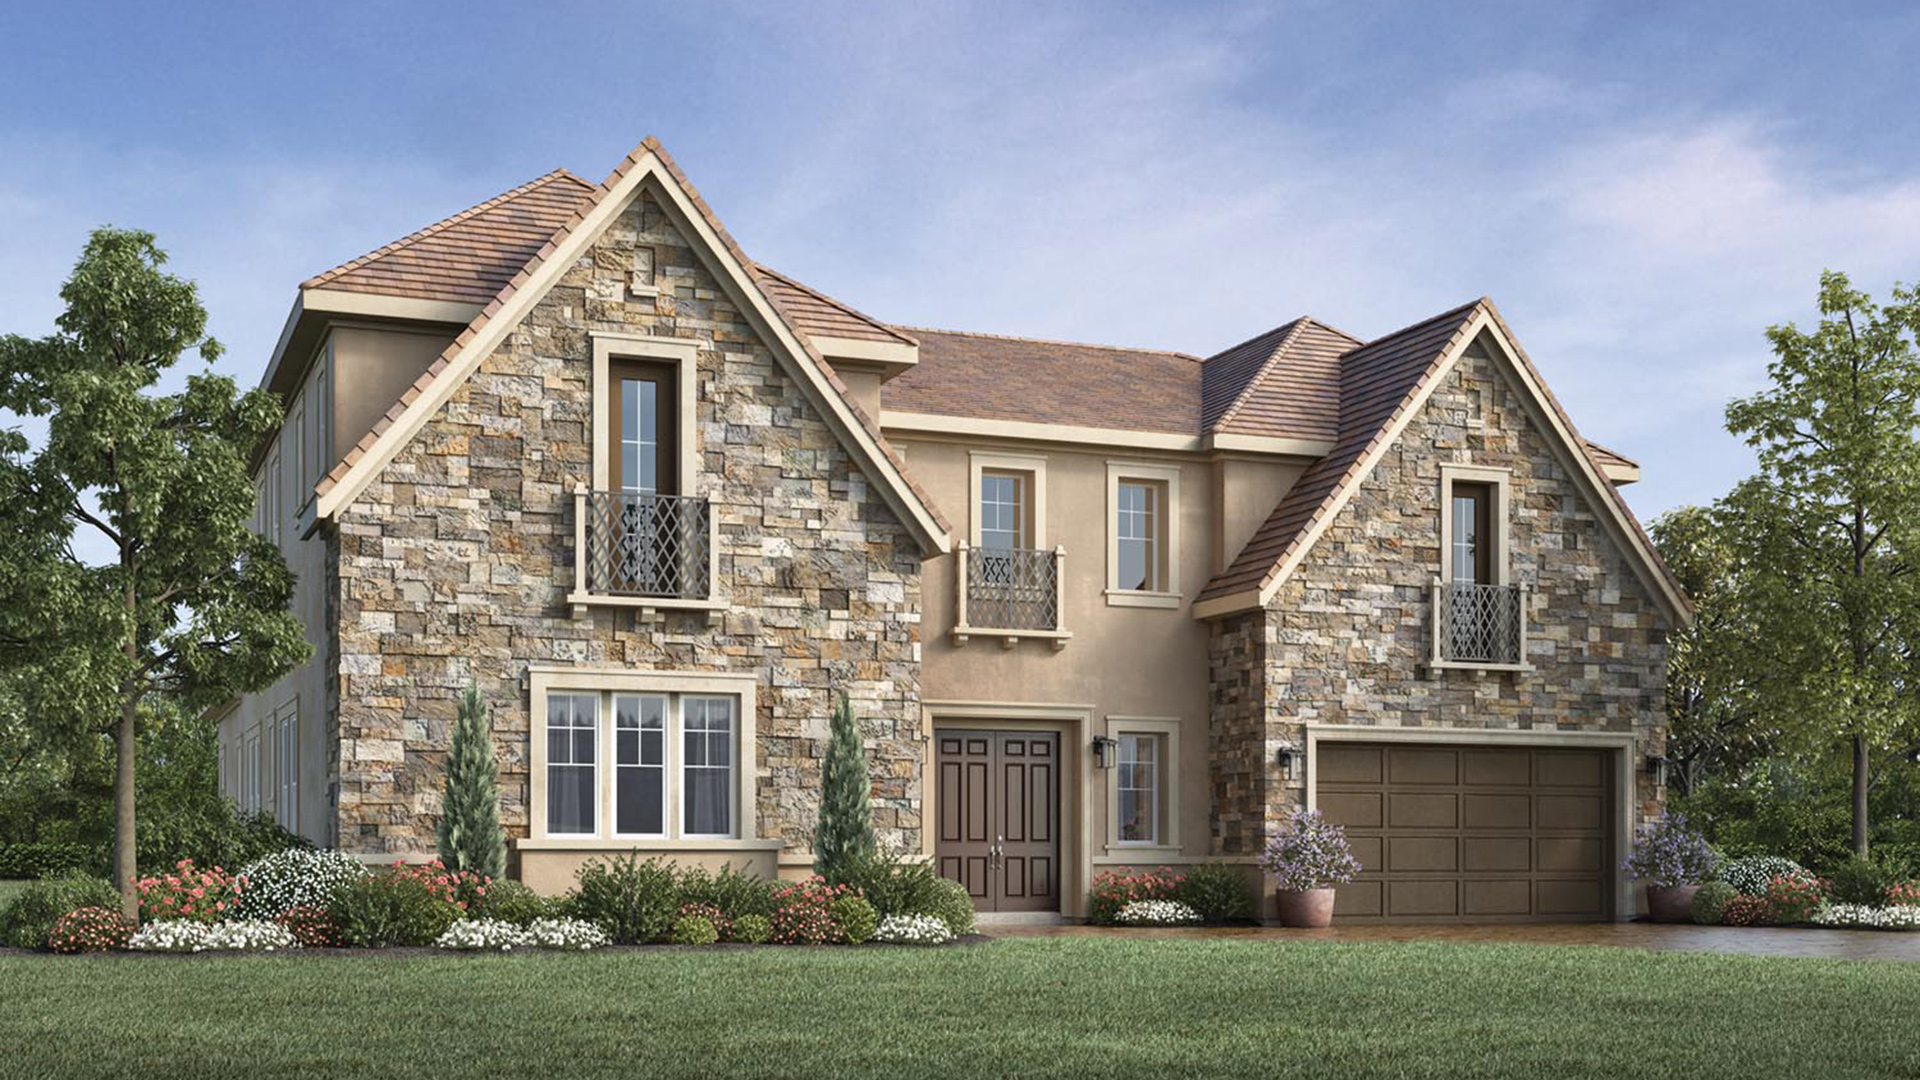 Toll brothers at robertson ranch the bluffs the for New construction single story homes